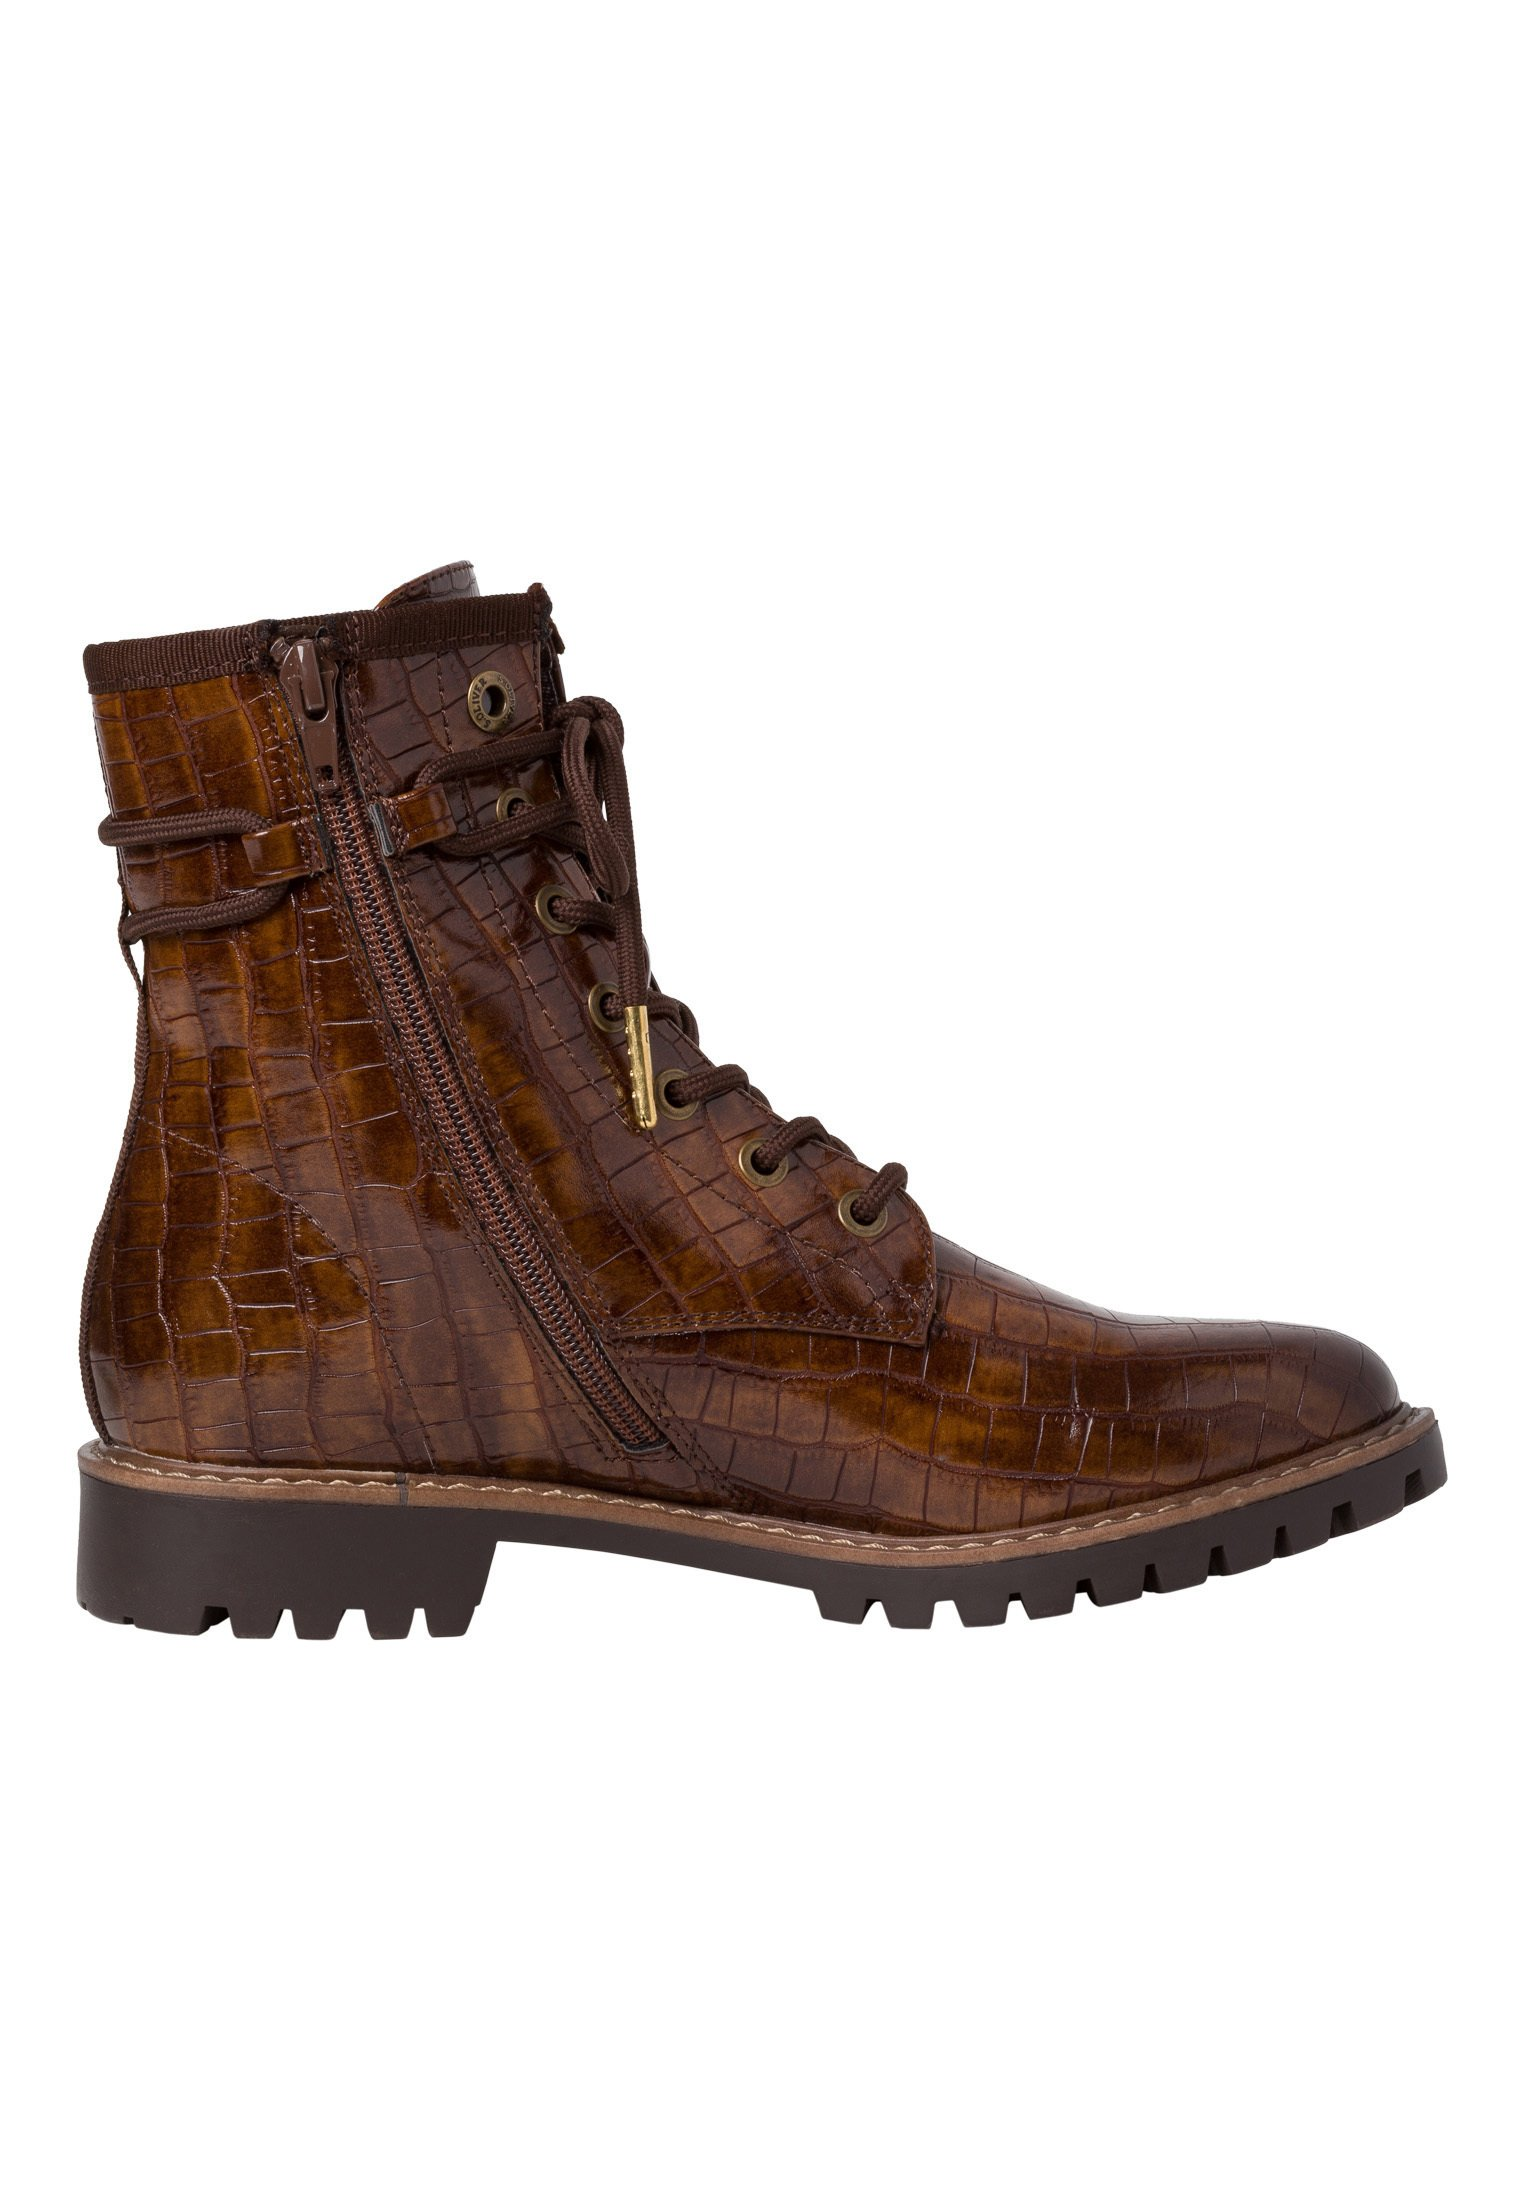 Limited Cheapest s.Oliver Lace-up ankle boots - cognac croco | women's shoes 2020 eEHxJ